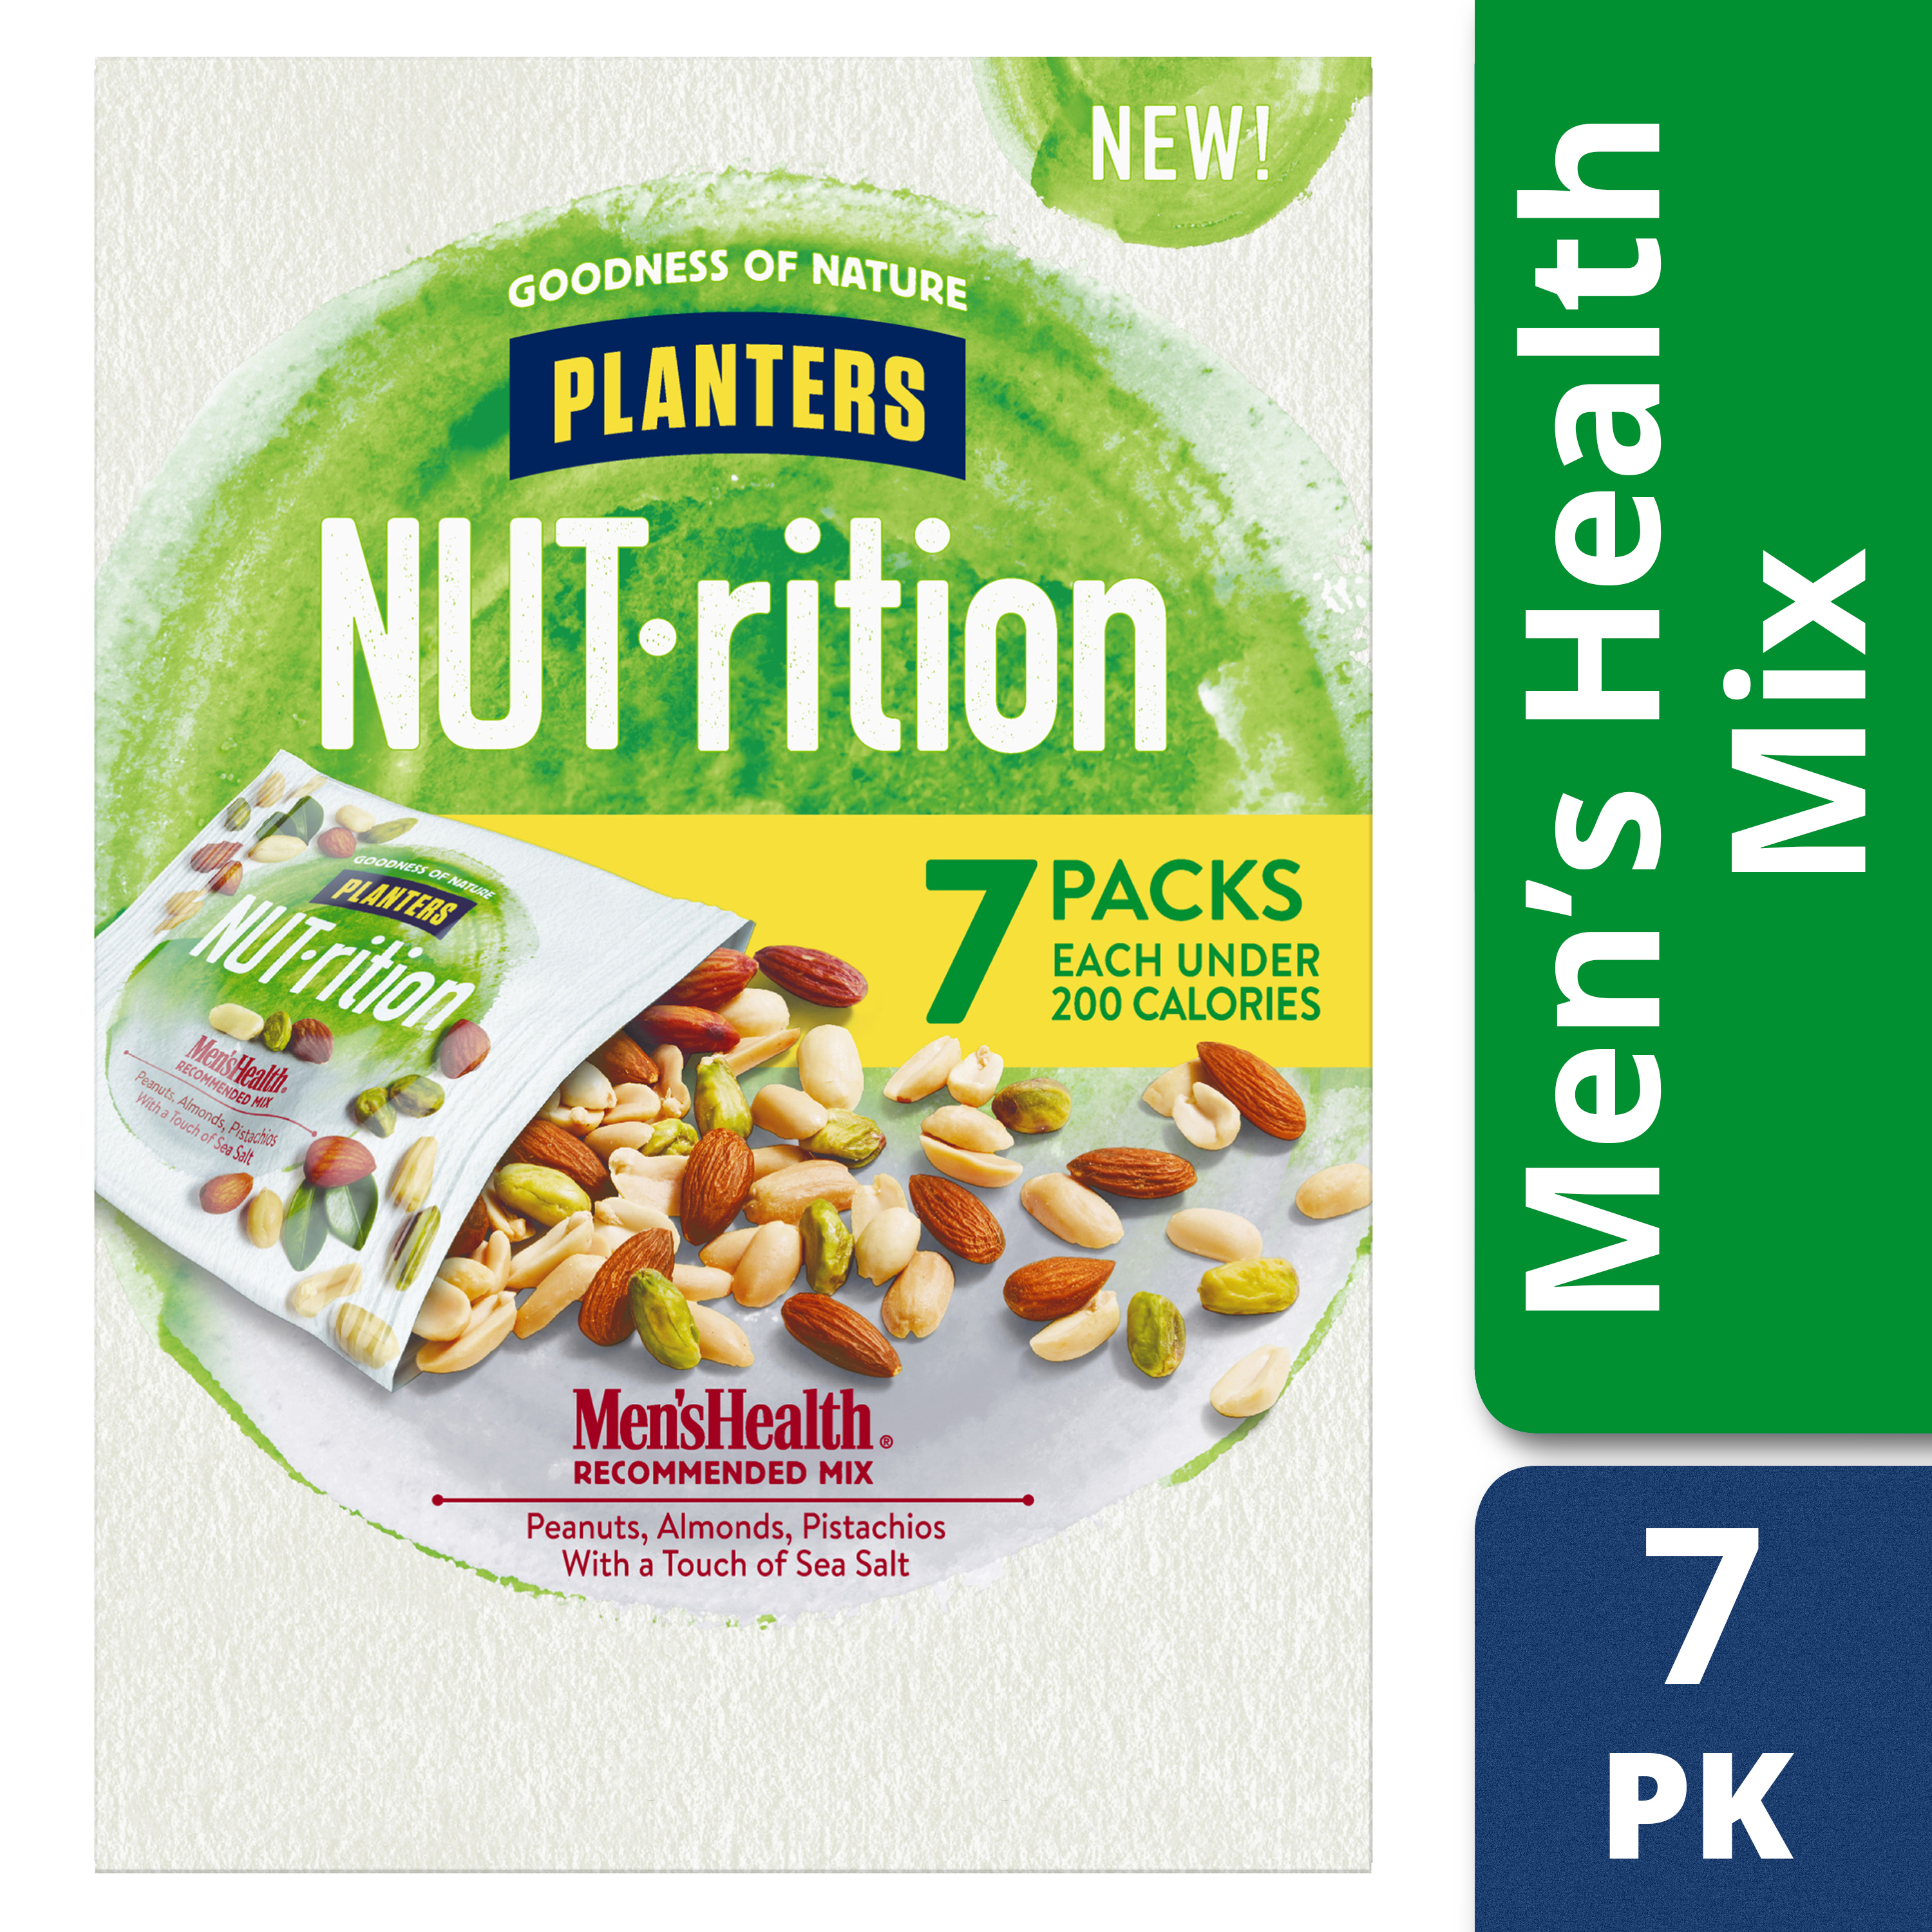 Planters NUT-rition Menâs Health Recommended Mix, 6 - 1.25 oz Bags